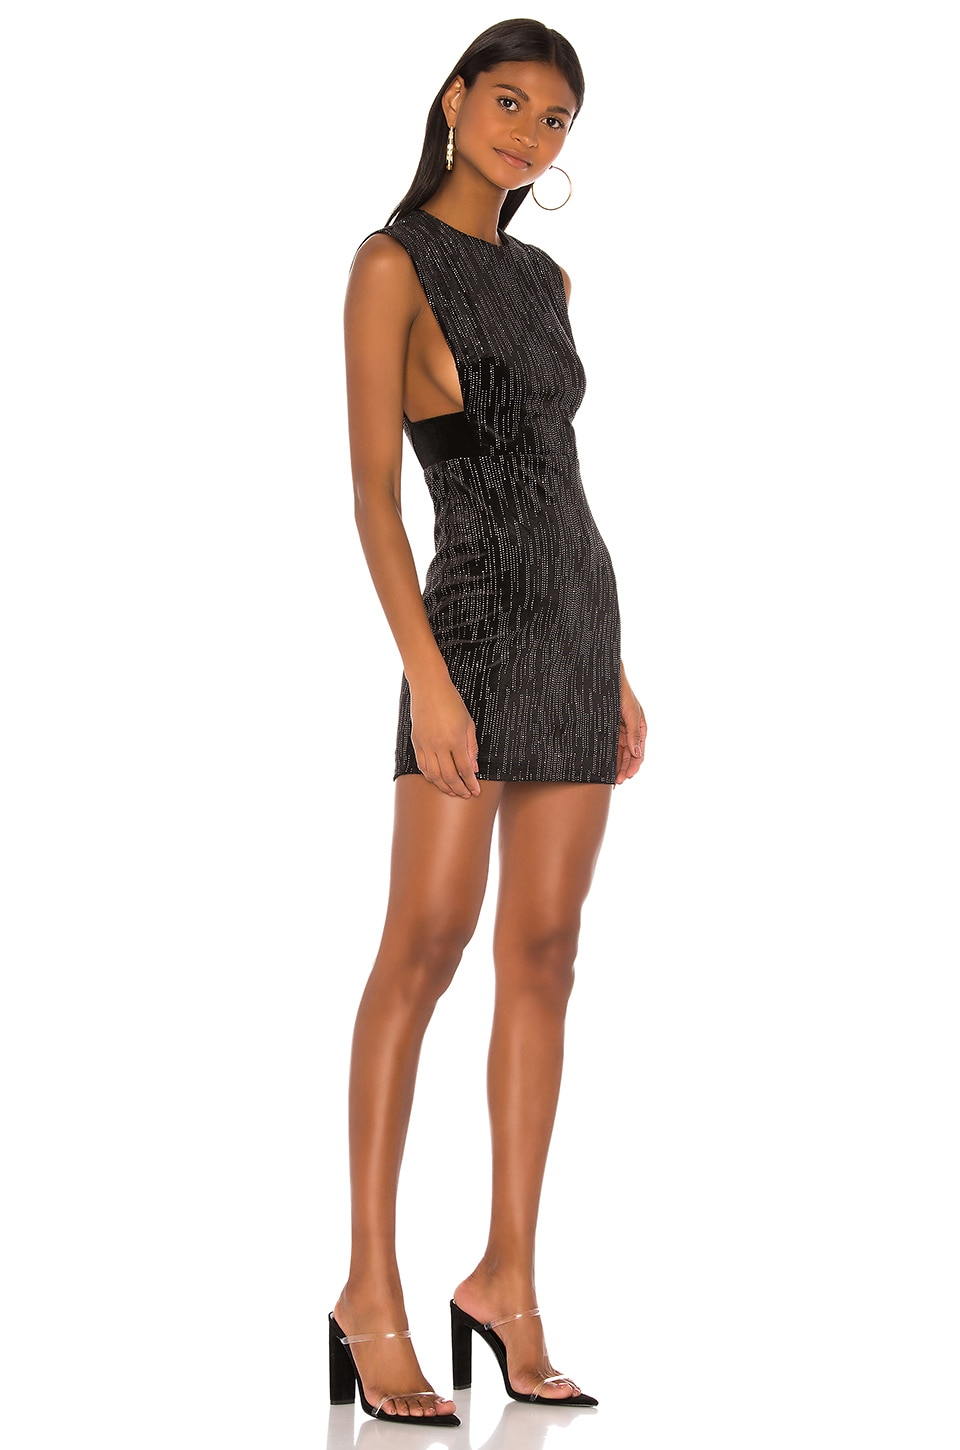 h:ours Mod Mini Dress in Black